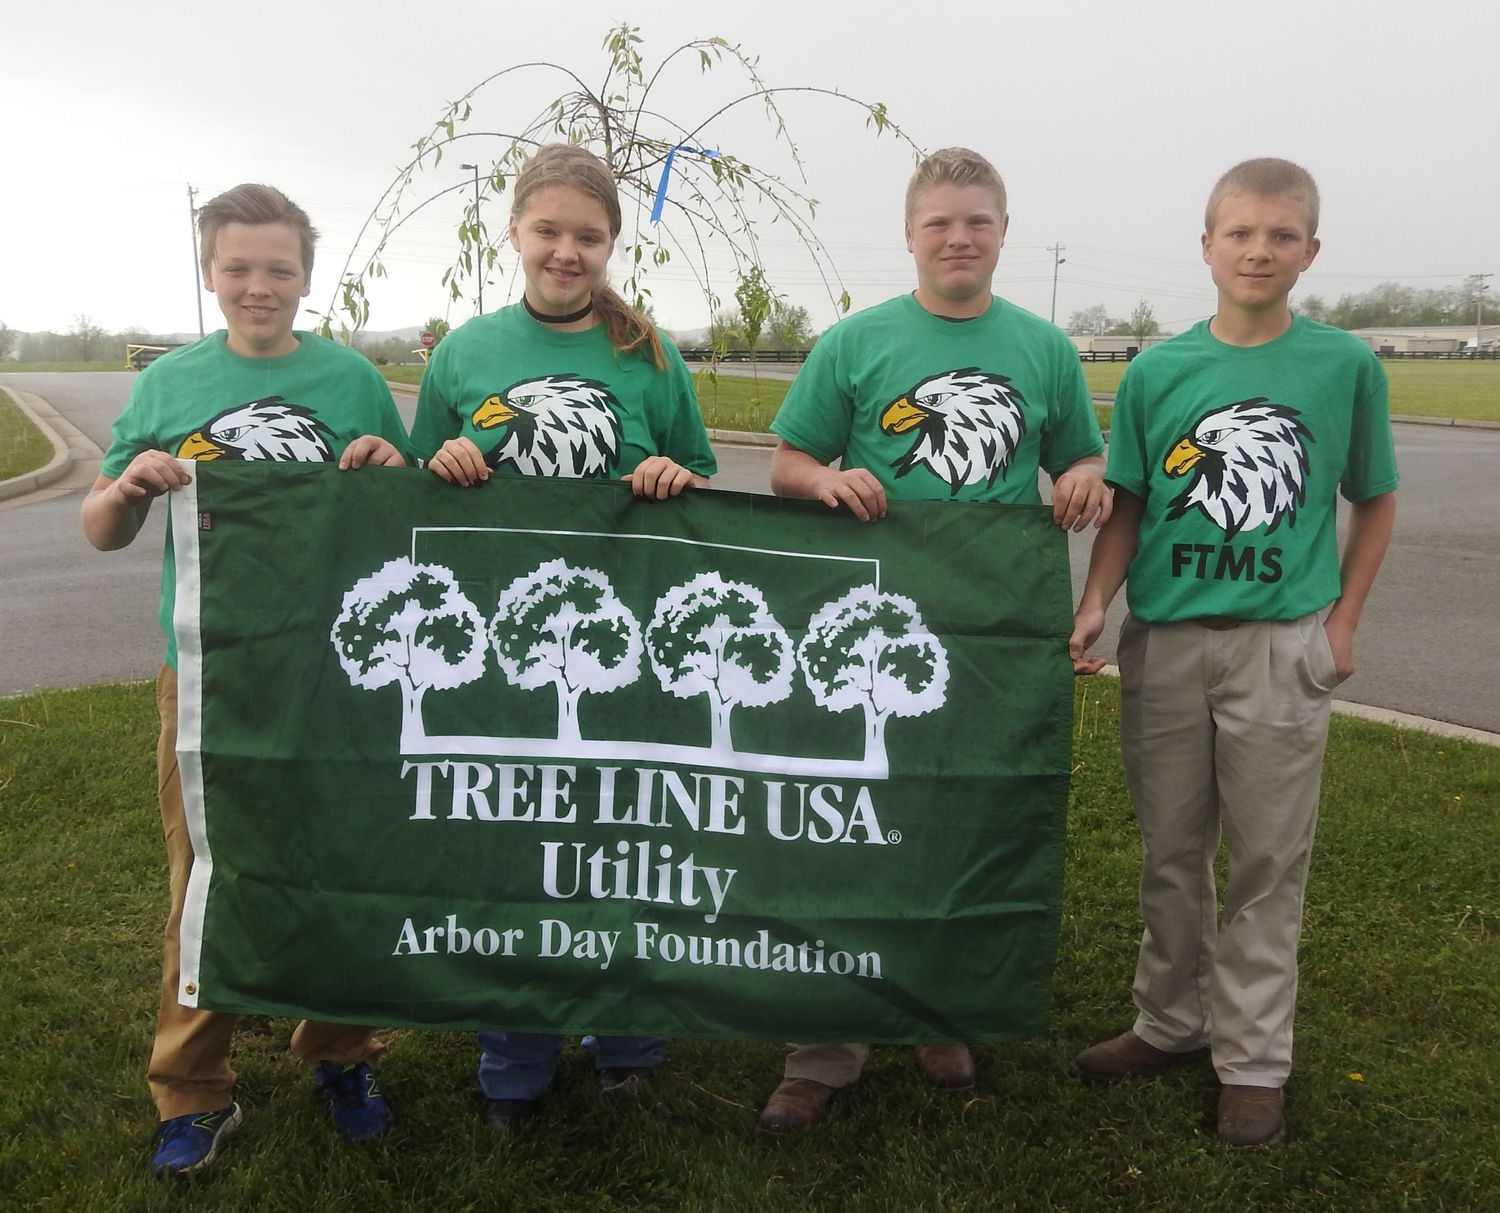 Students at Farristown Middle School in Berea participate in an Earth Day event sponsored by Blue Grass Energy.